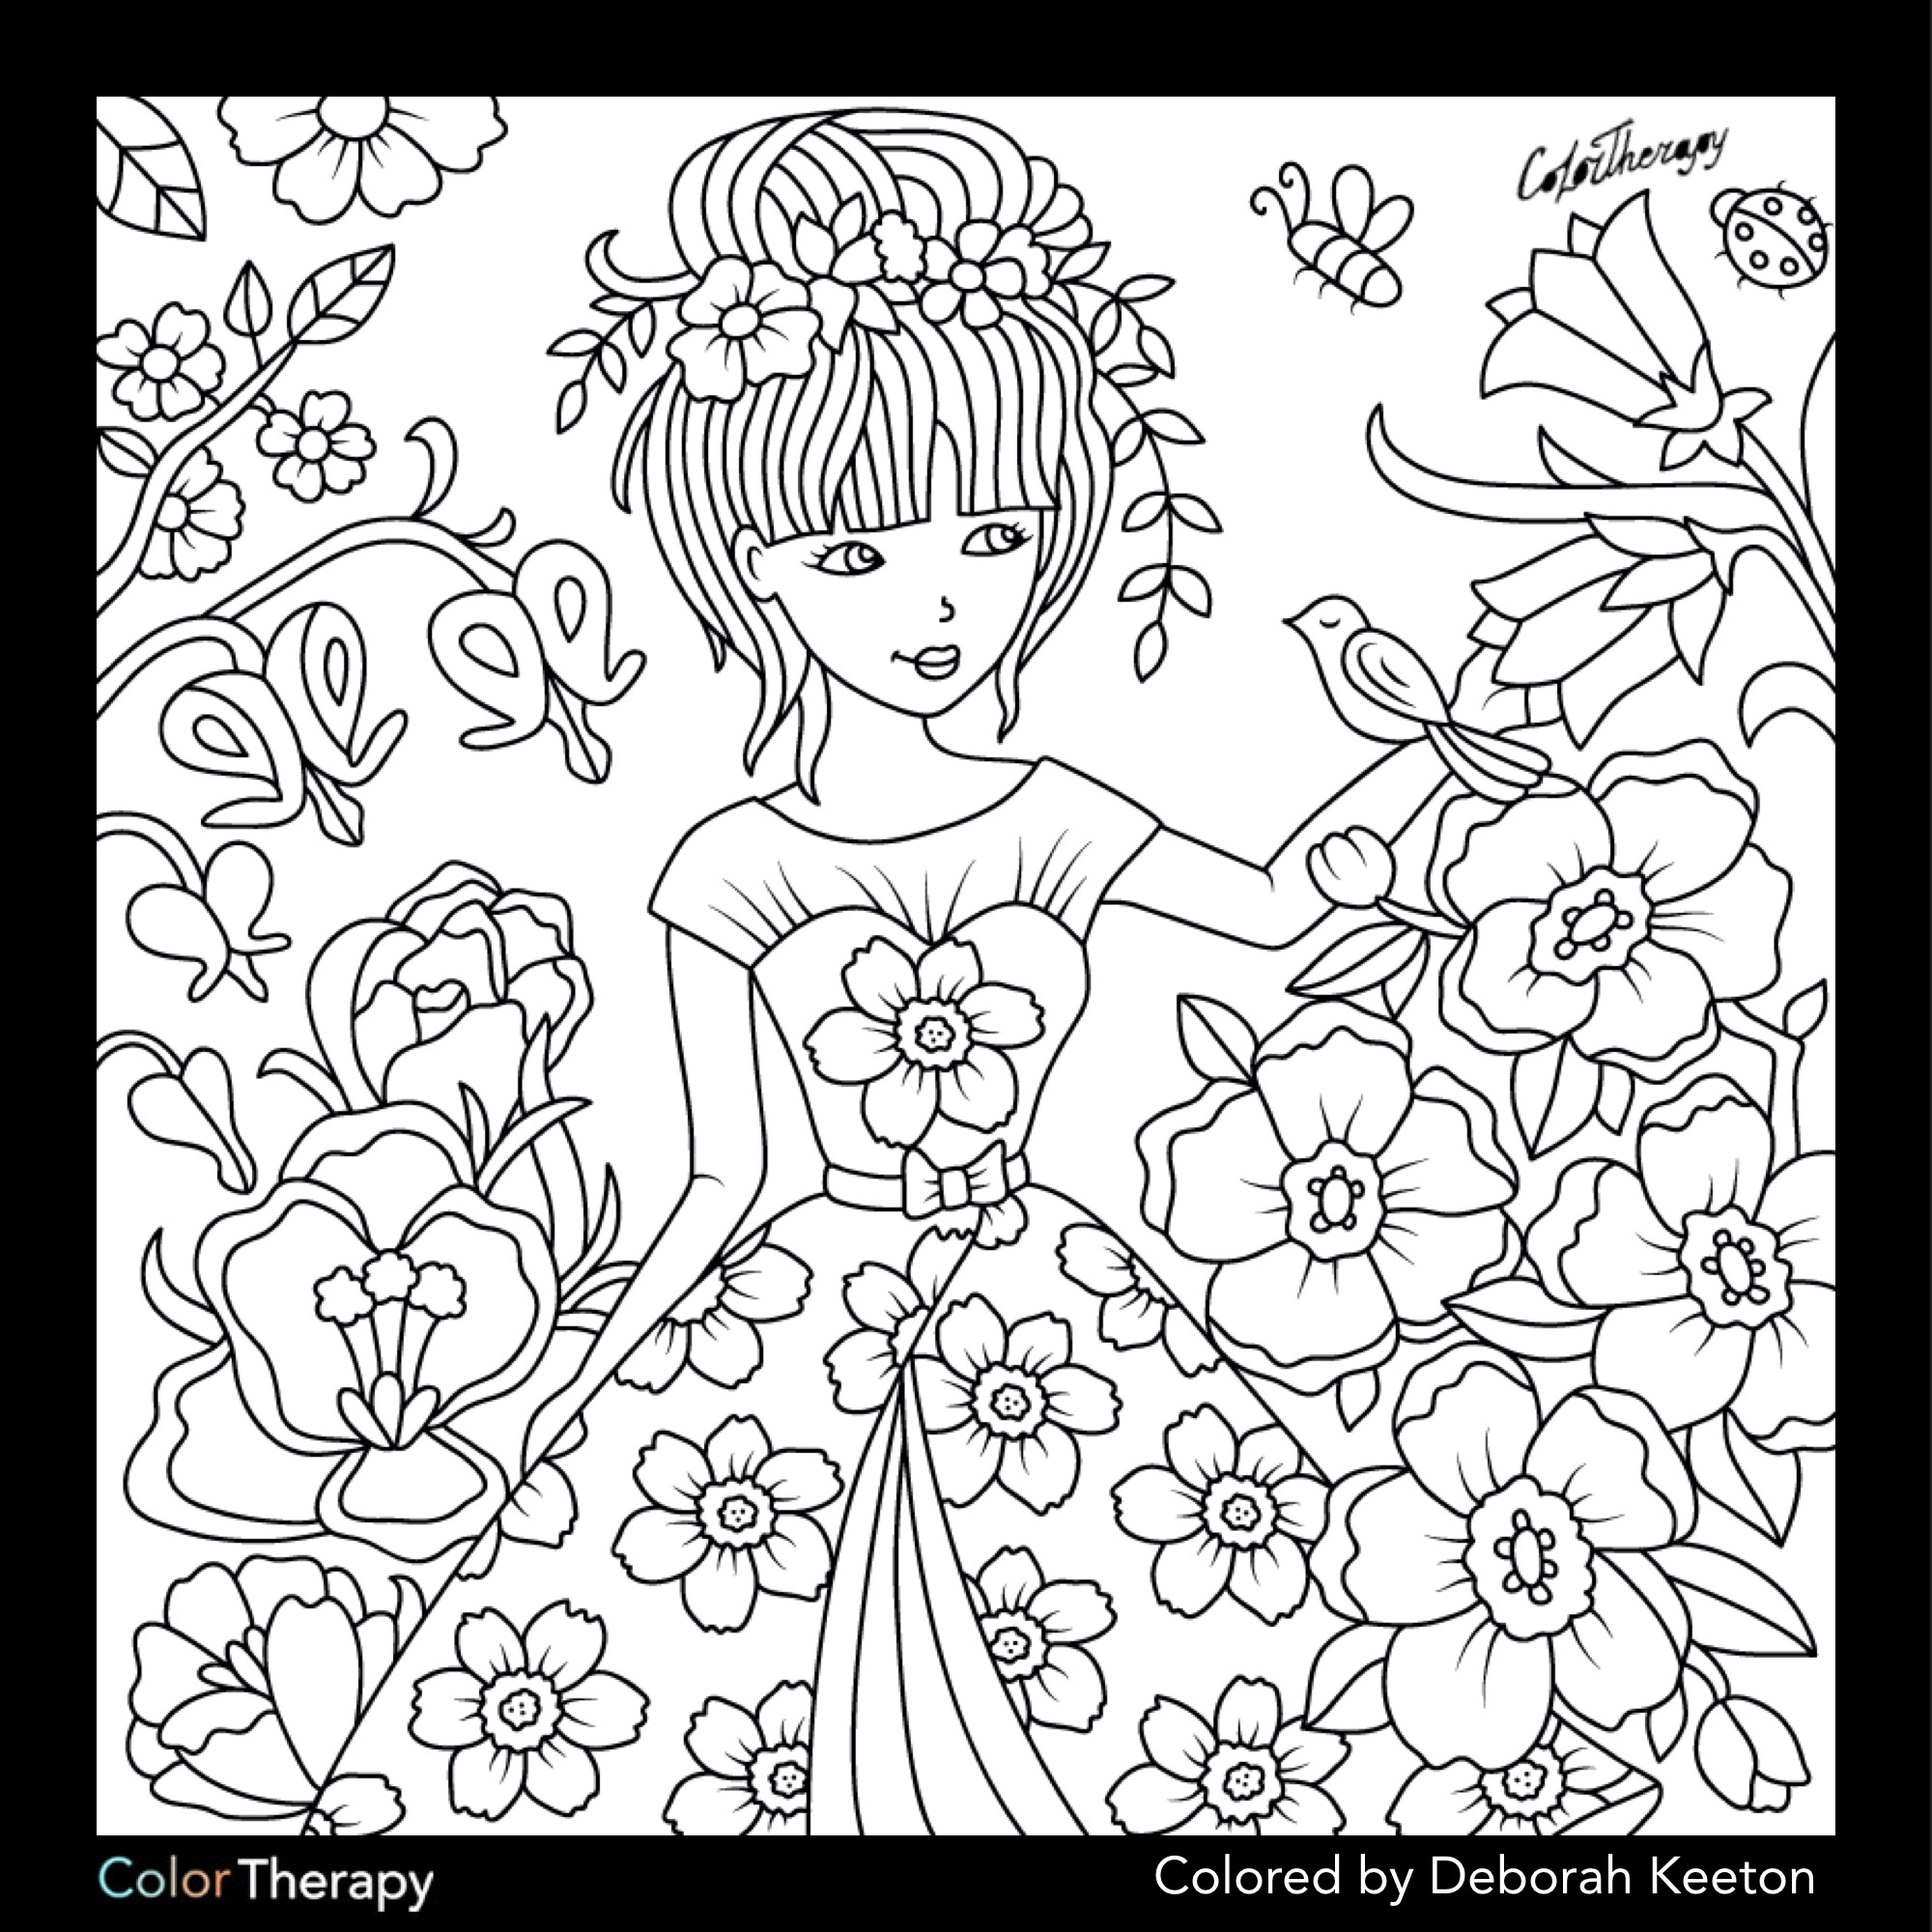 rose garden coloring page rose garden drawing at getdrawings free download rose page garden coloring